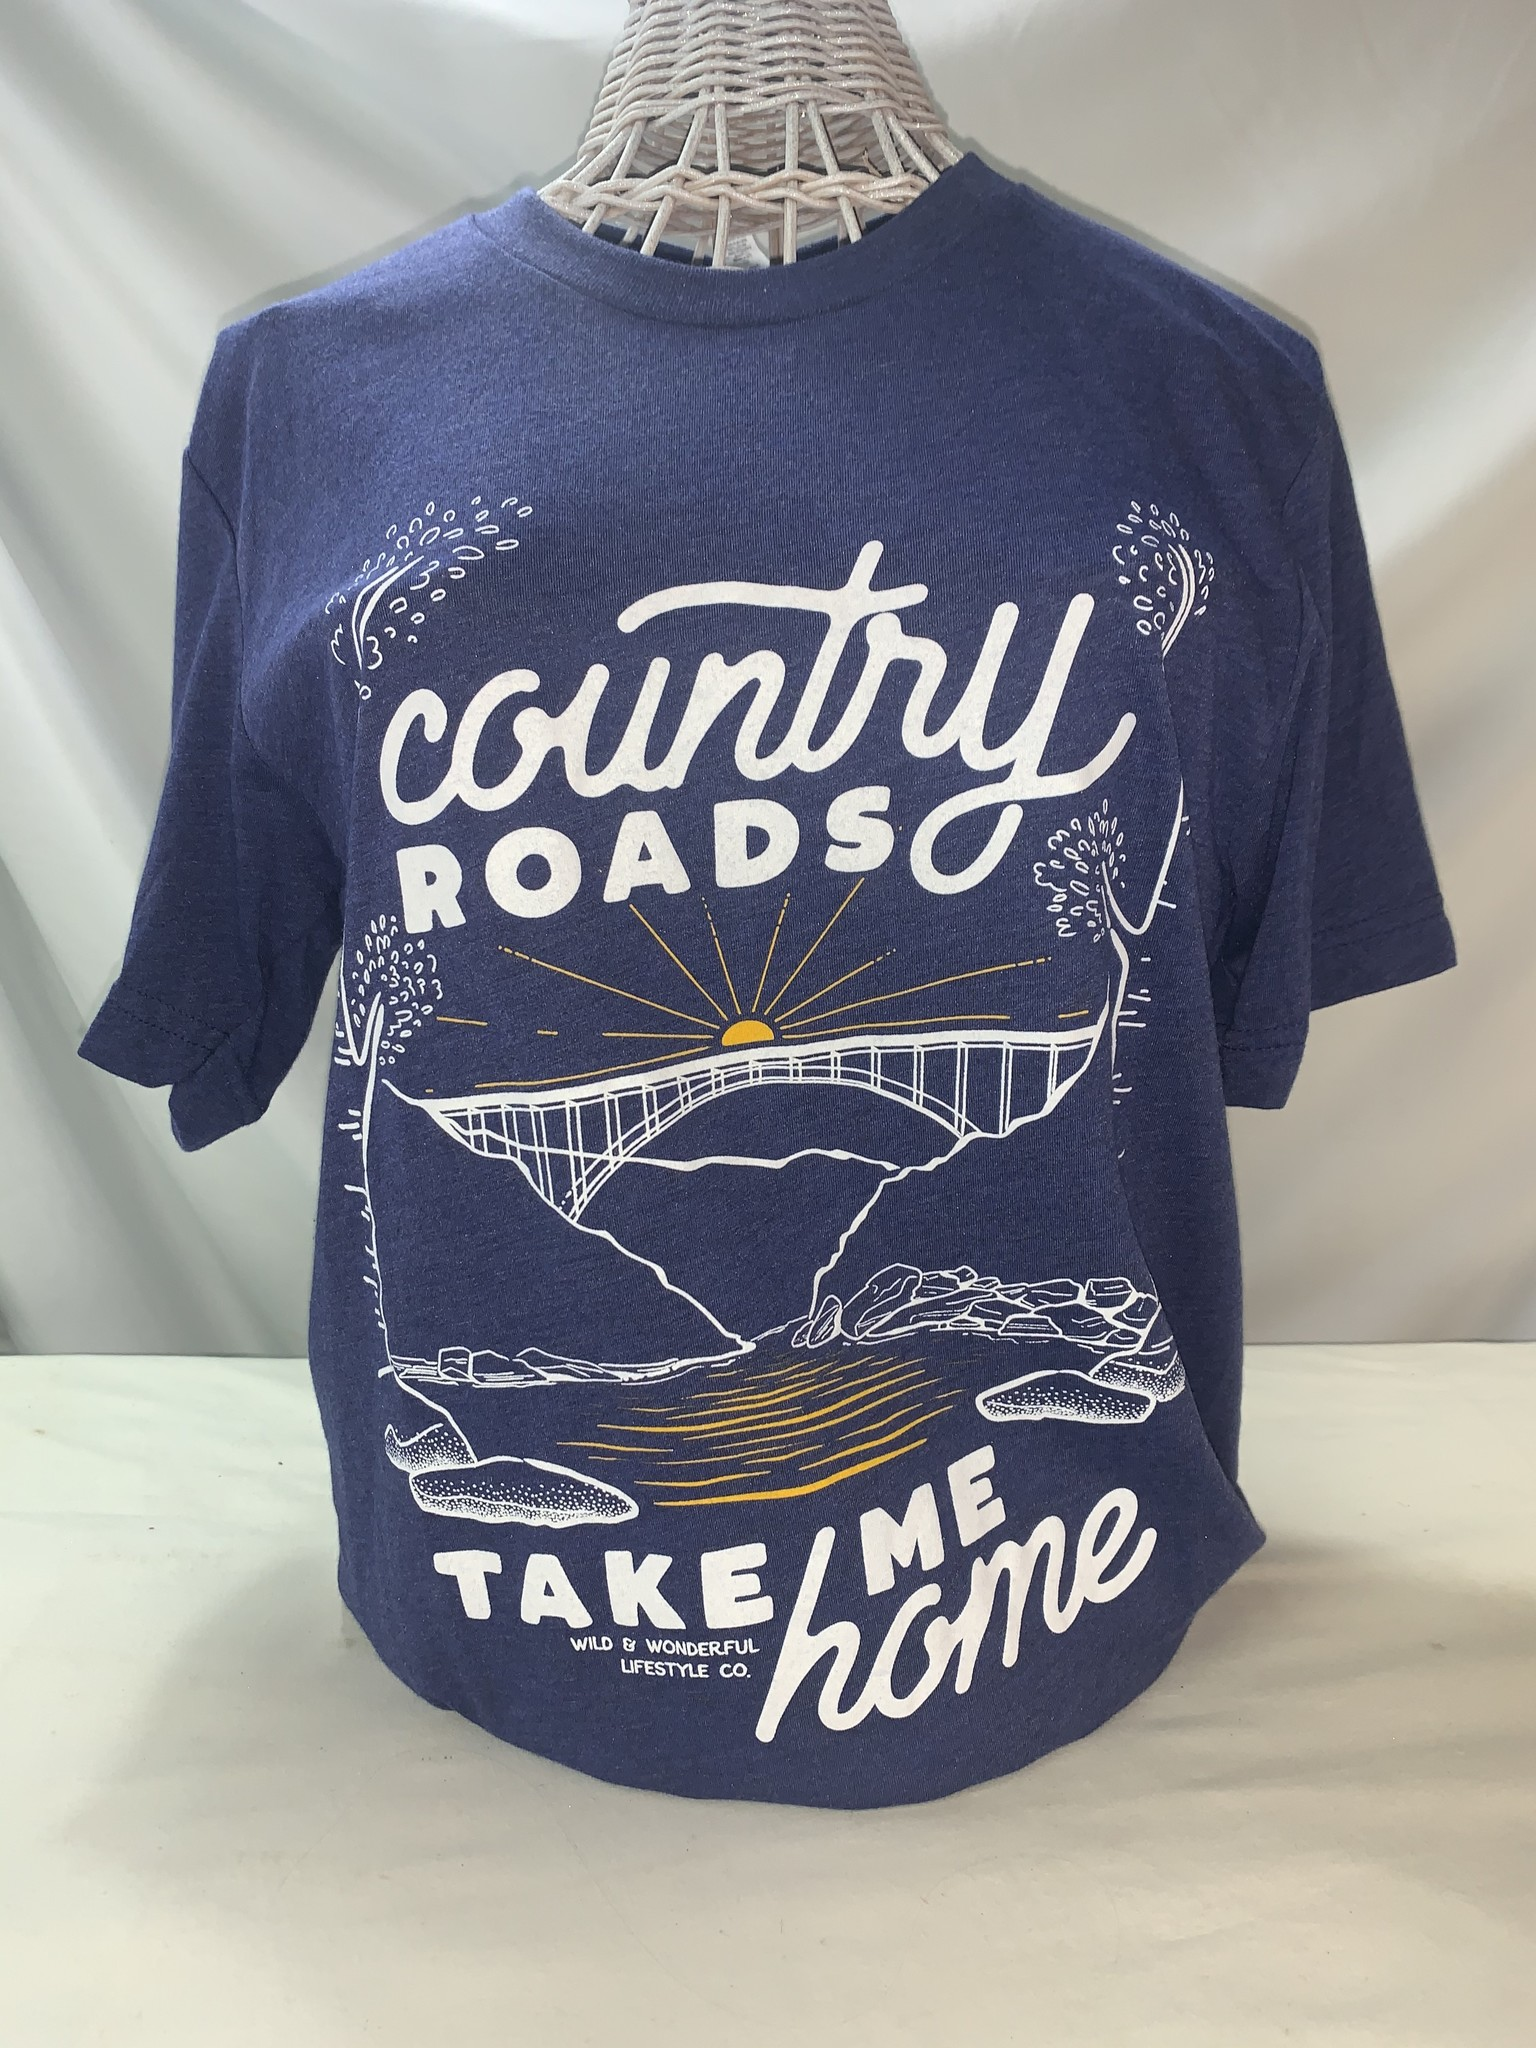 Wild & Wonderful Lifestyle Company WV Country Roads Tee Sm